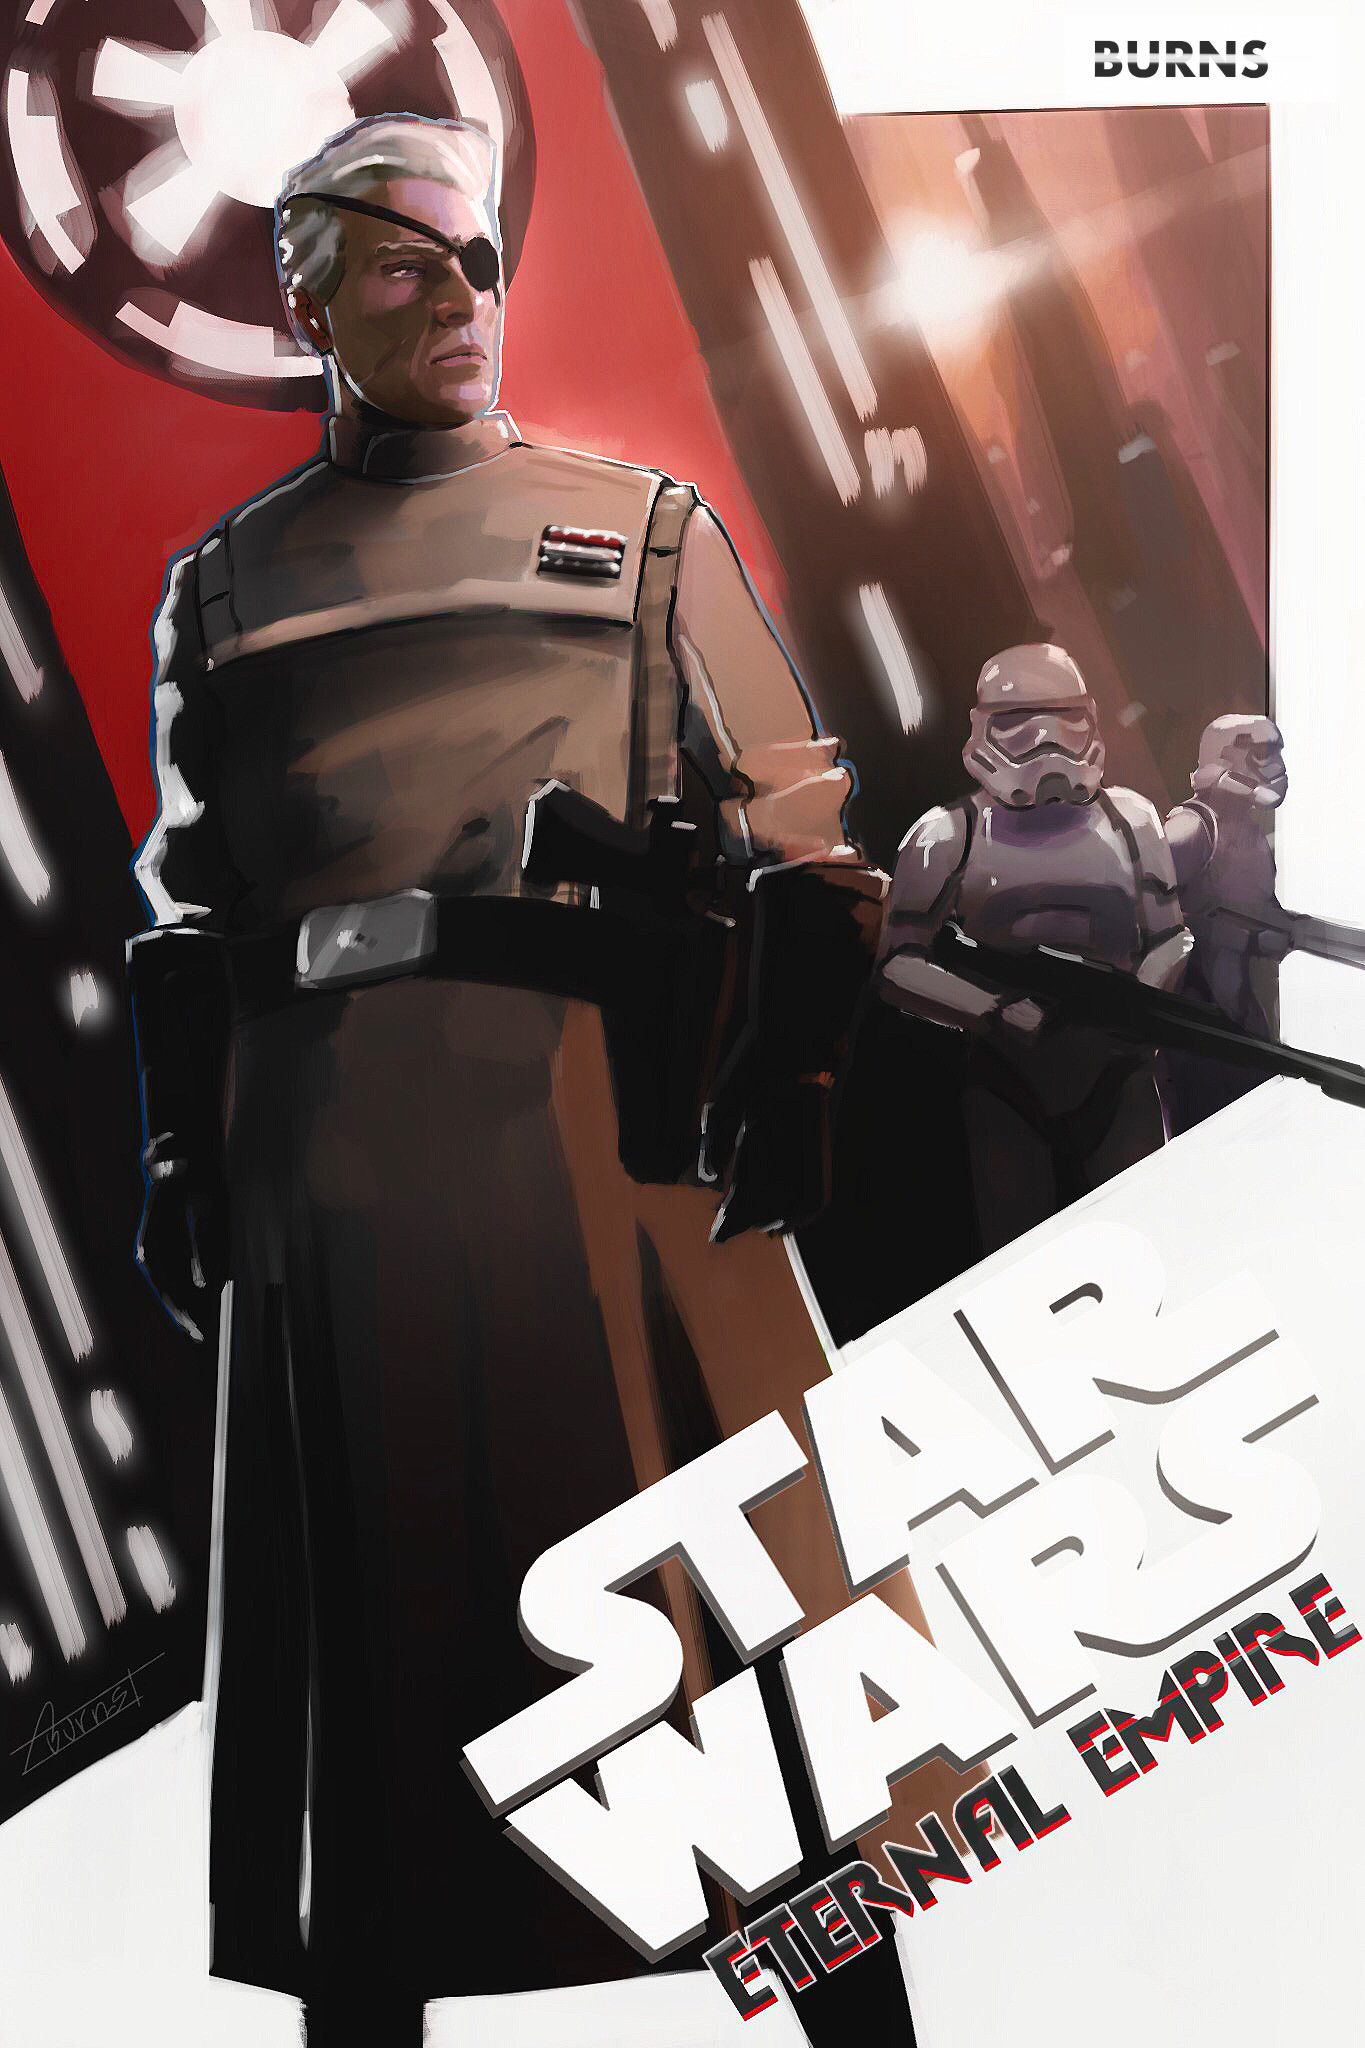 Star Wars: Eternal Empire #1